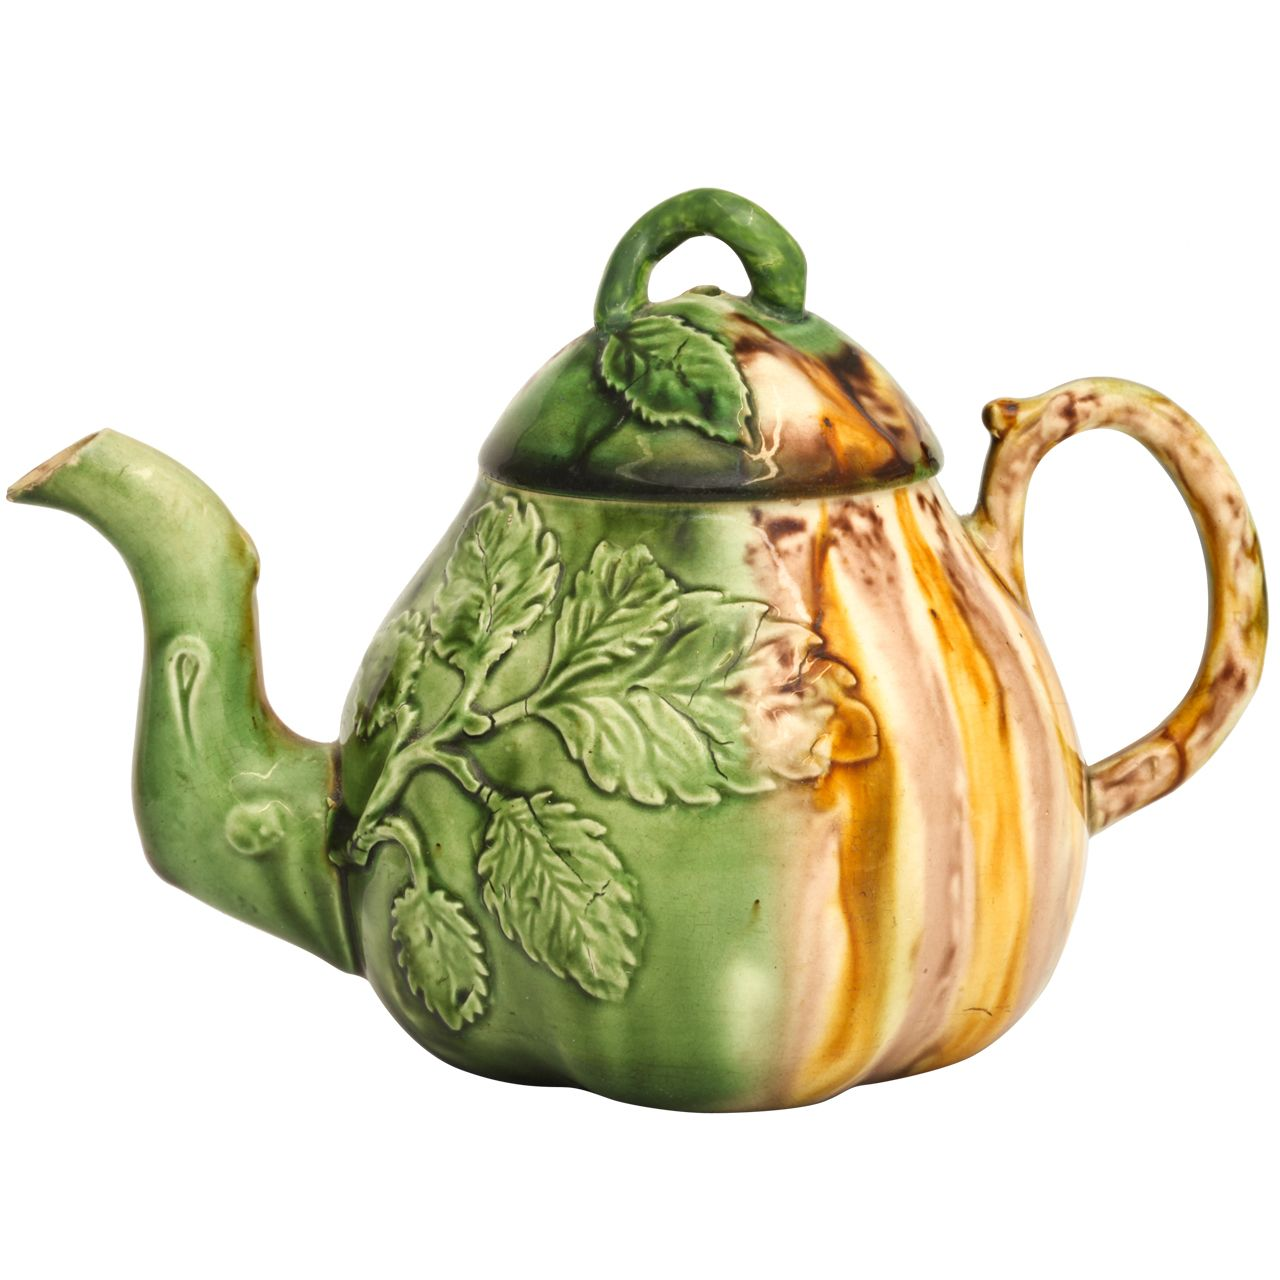 A Rare Whieldon School Pottery Pear Shape Teapot | From a unique collection of antique and modern pottery at http://www.1stdibs.com/dining-entertaining/pottery/